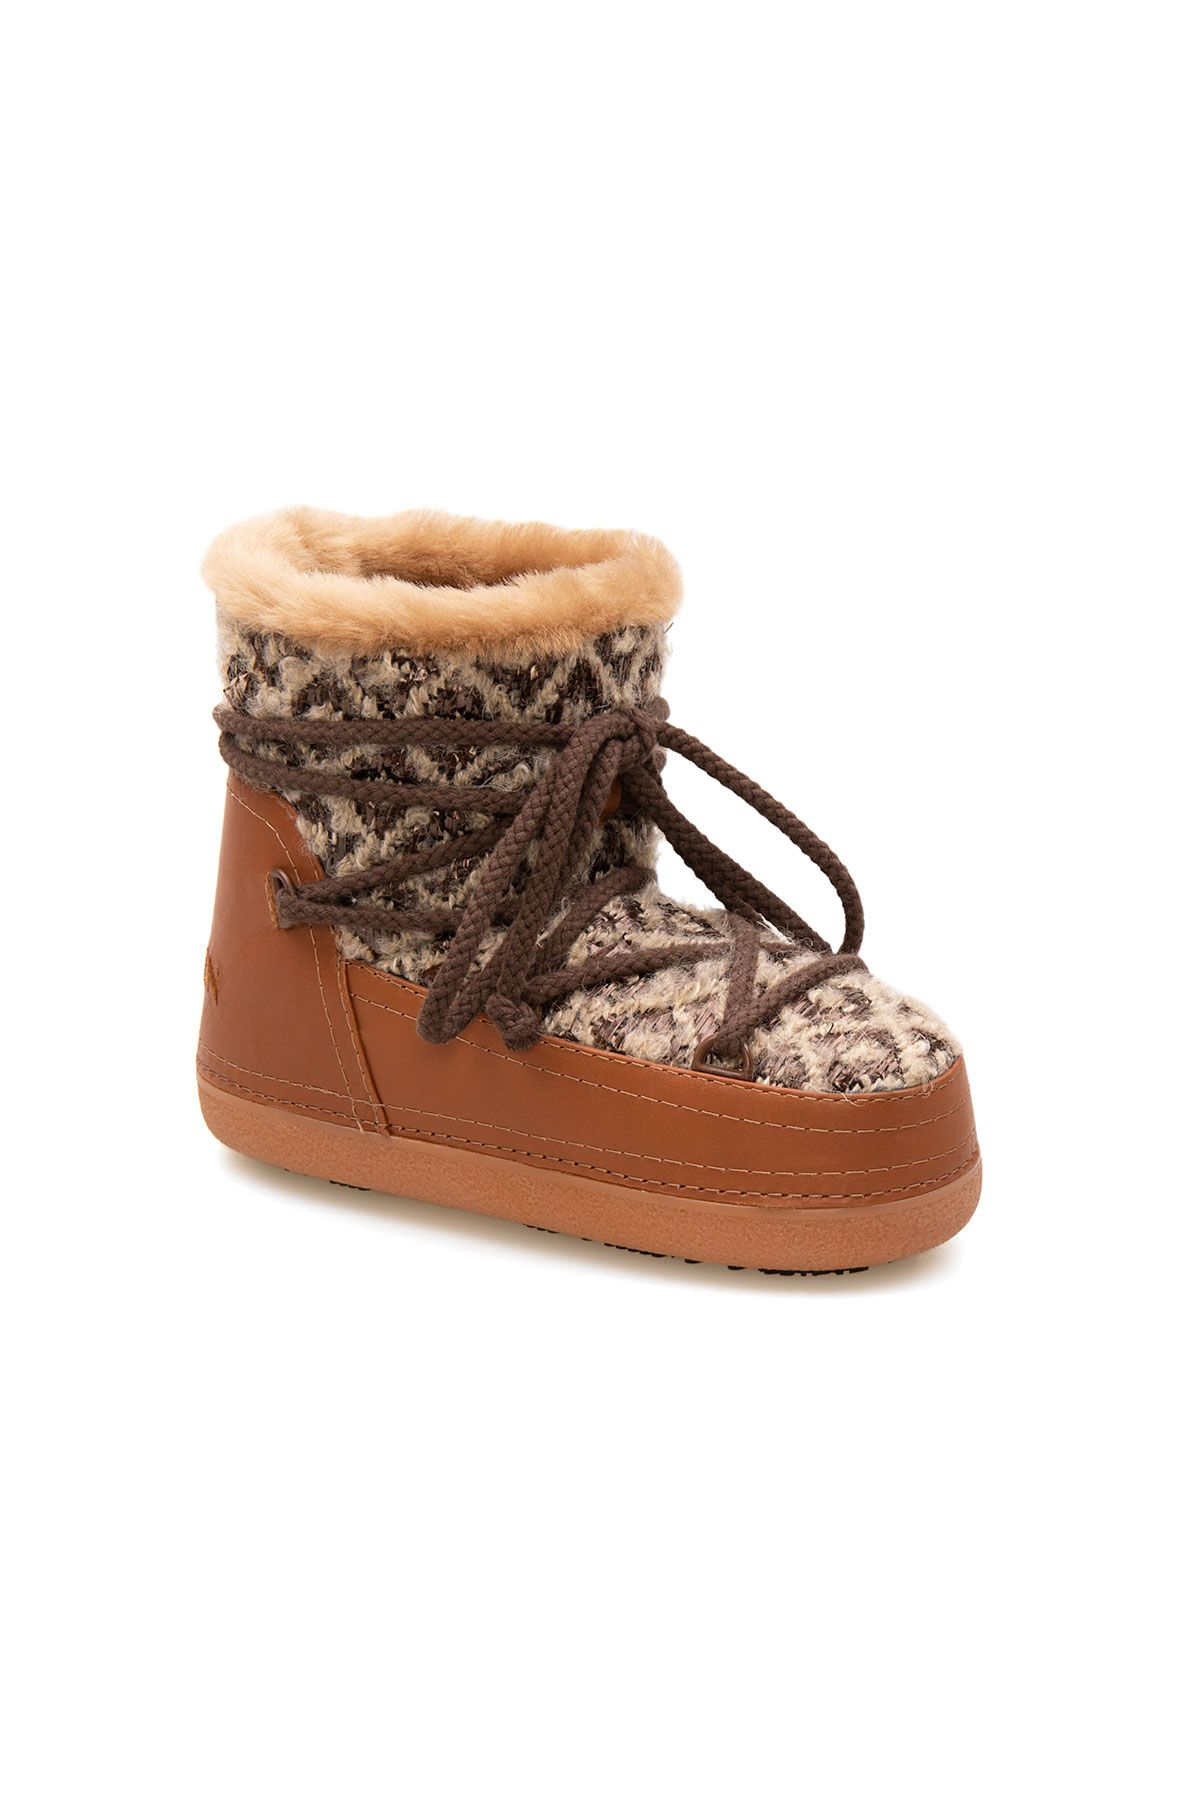 Cool Moon Genuine Sheepskin Lined Women's Snow Boots 251314 Ginger